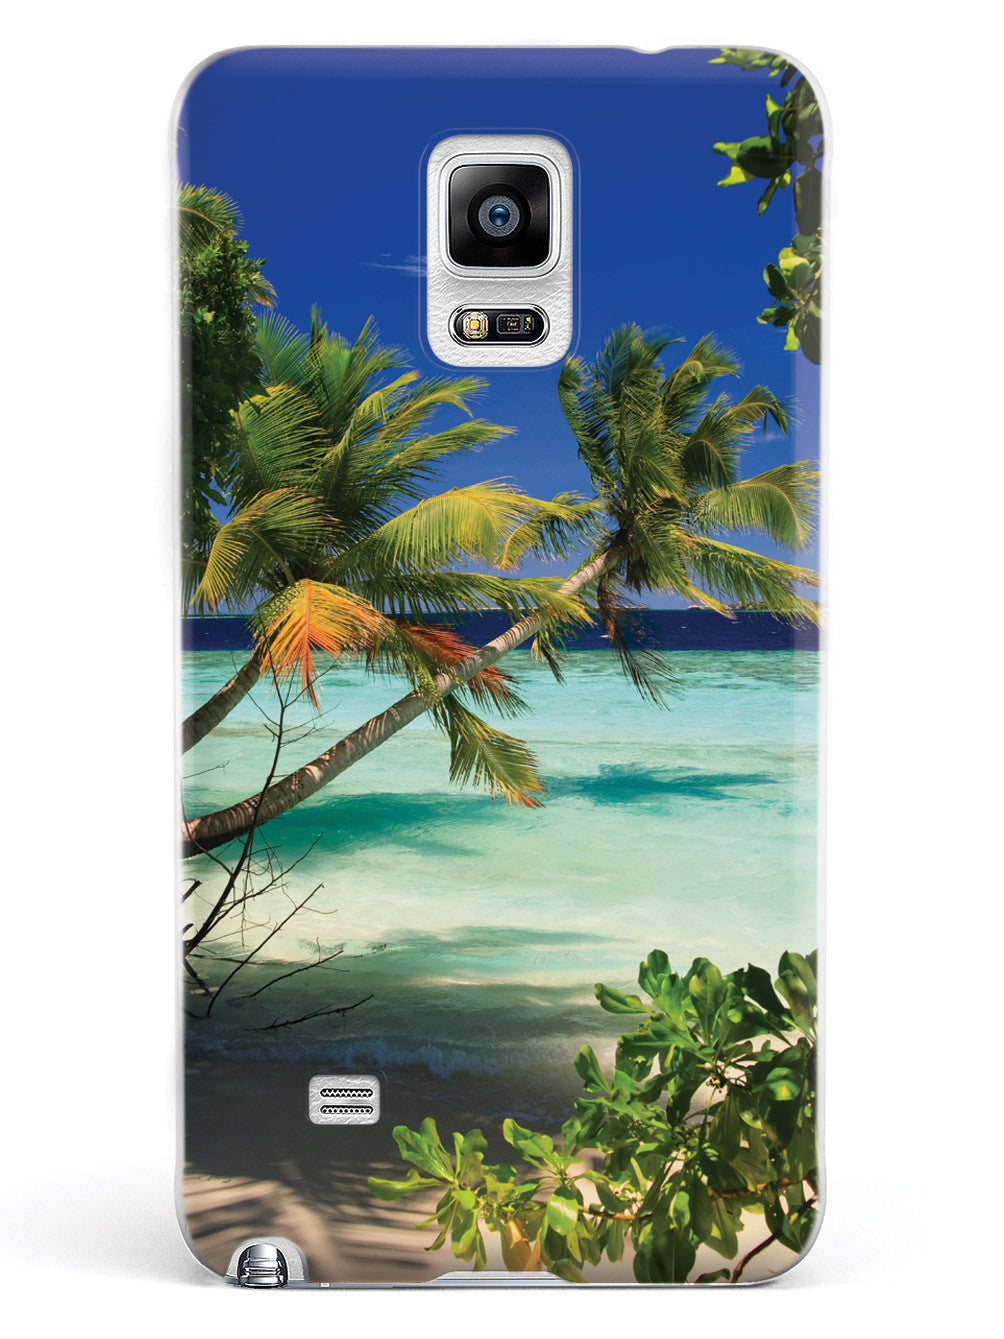 Palm Trees and Beach Scene Case